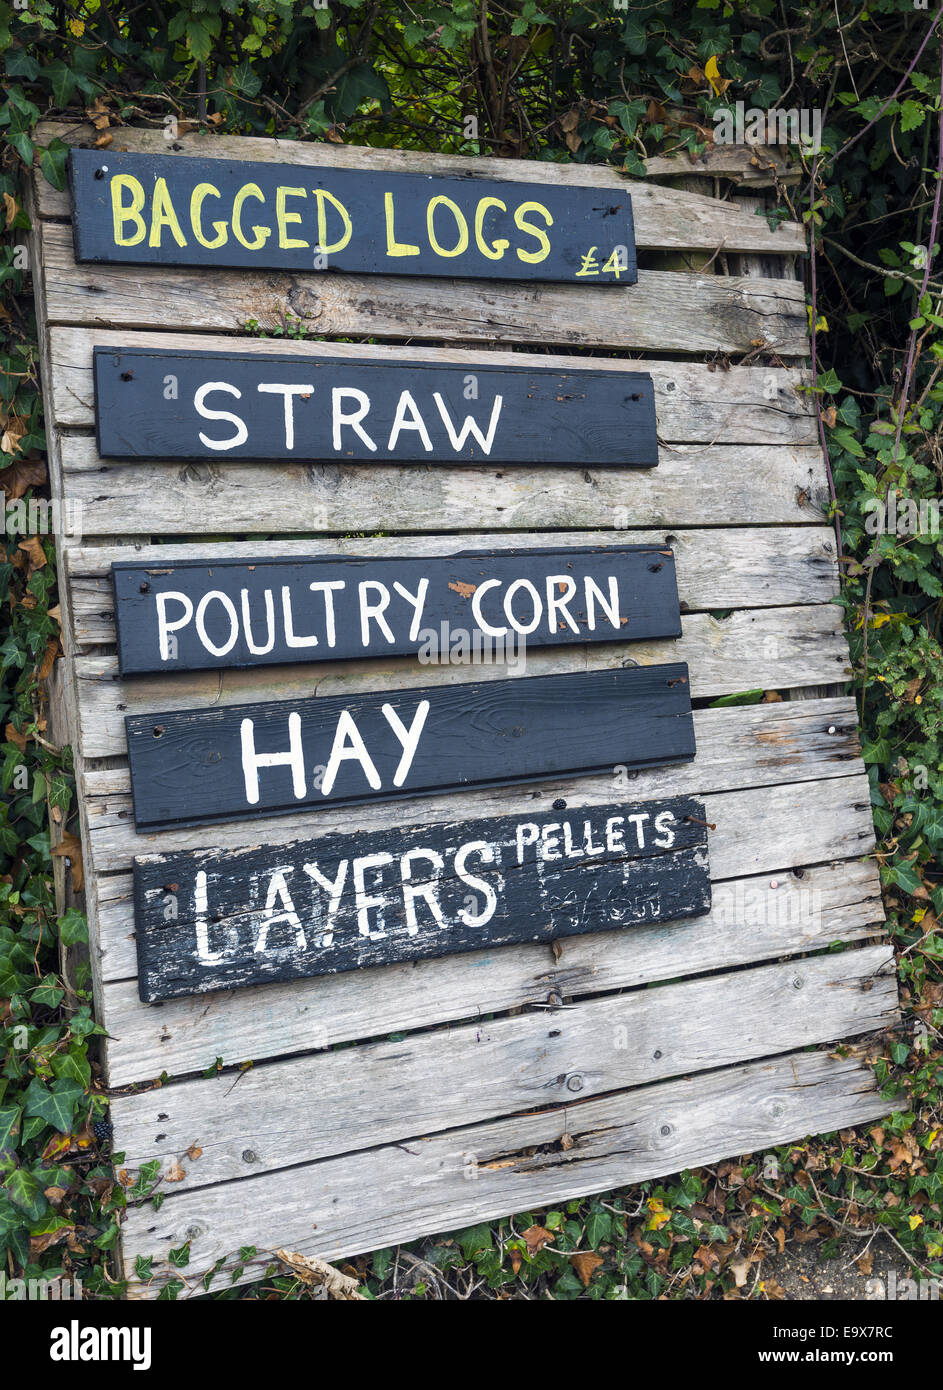 Roadside pallet farm sign for bagged logs, straw, poultry corn, hay and layers - Stock Image